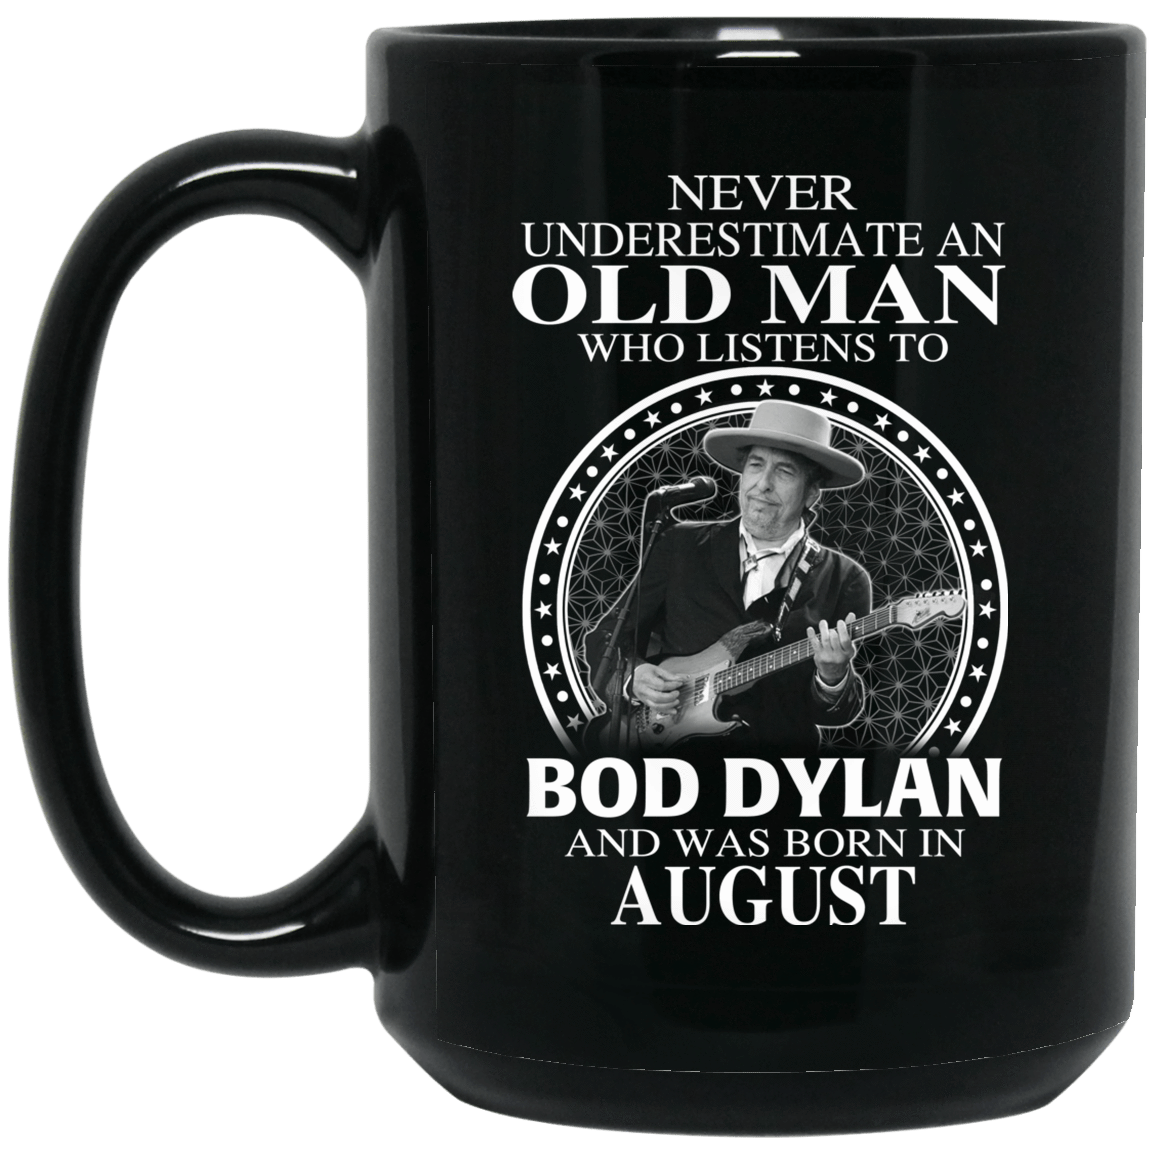 An Old Man Who Listens To Bob Dylan And Was Born In August Mug 1066-10182-76154382-49311 - Tee Ript